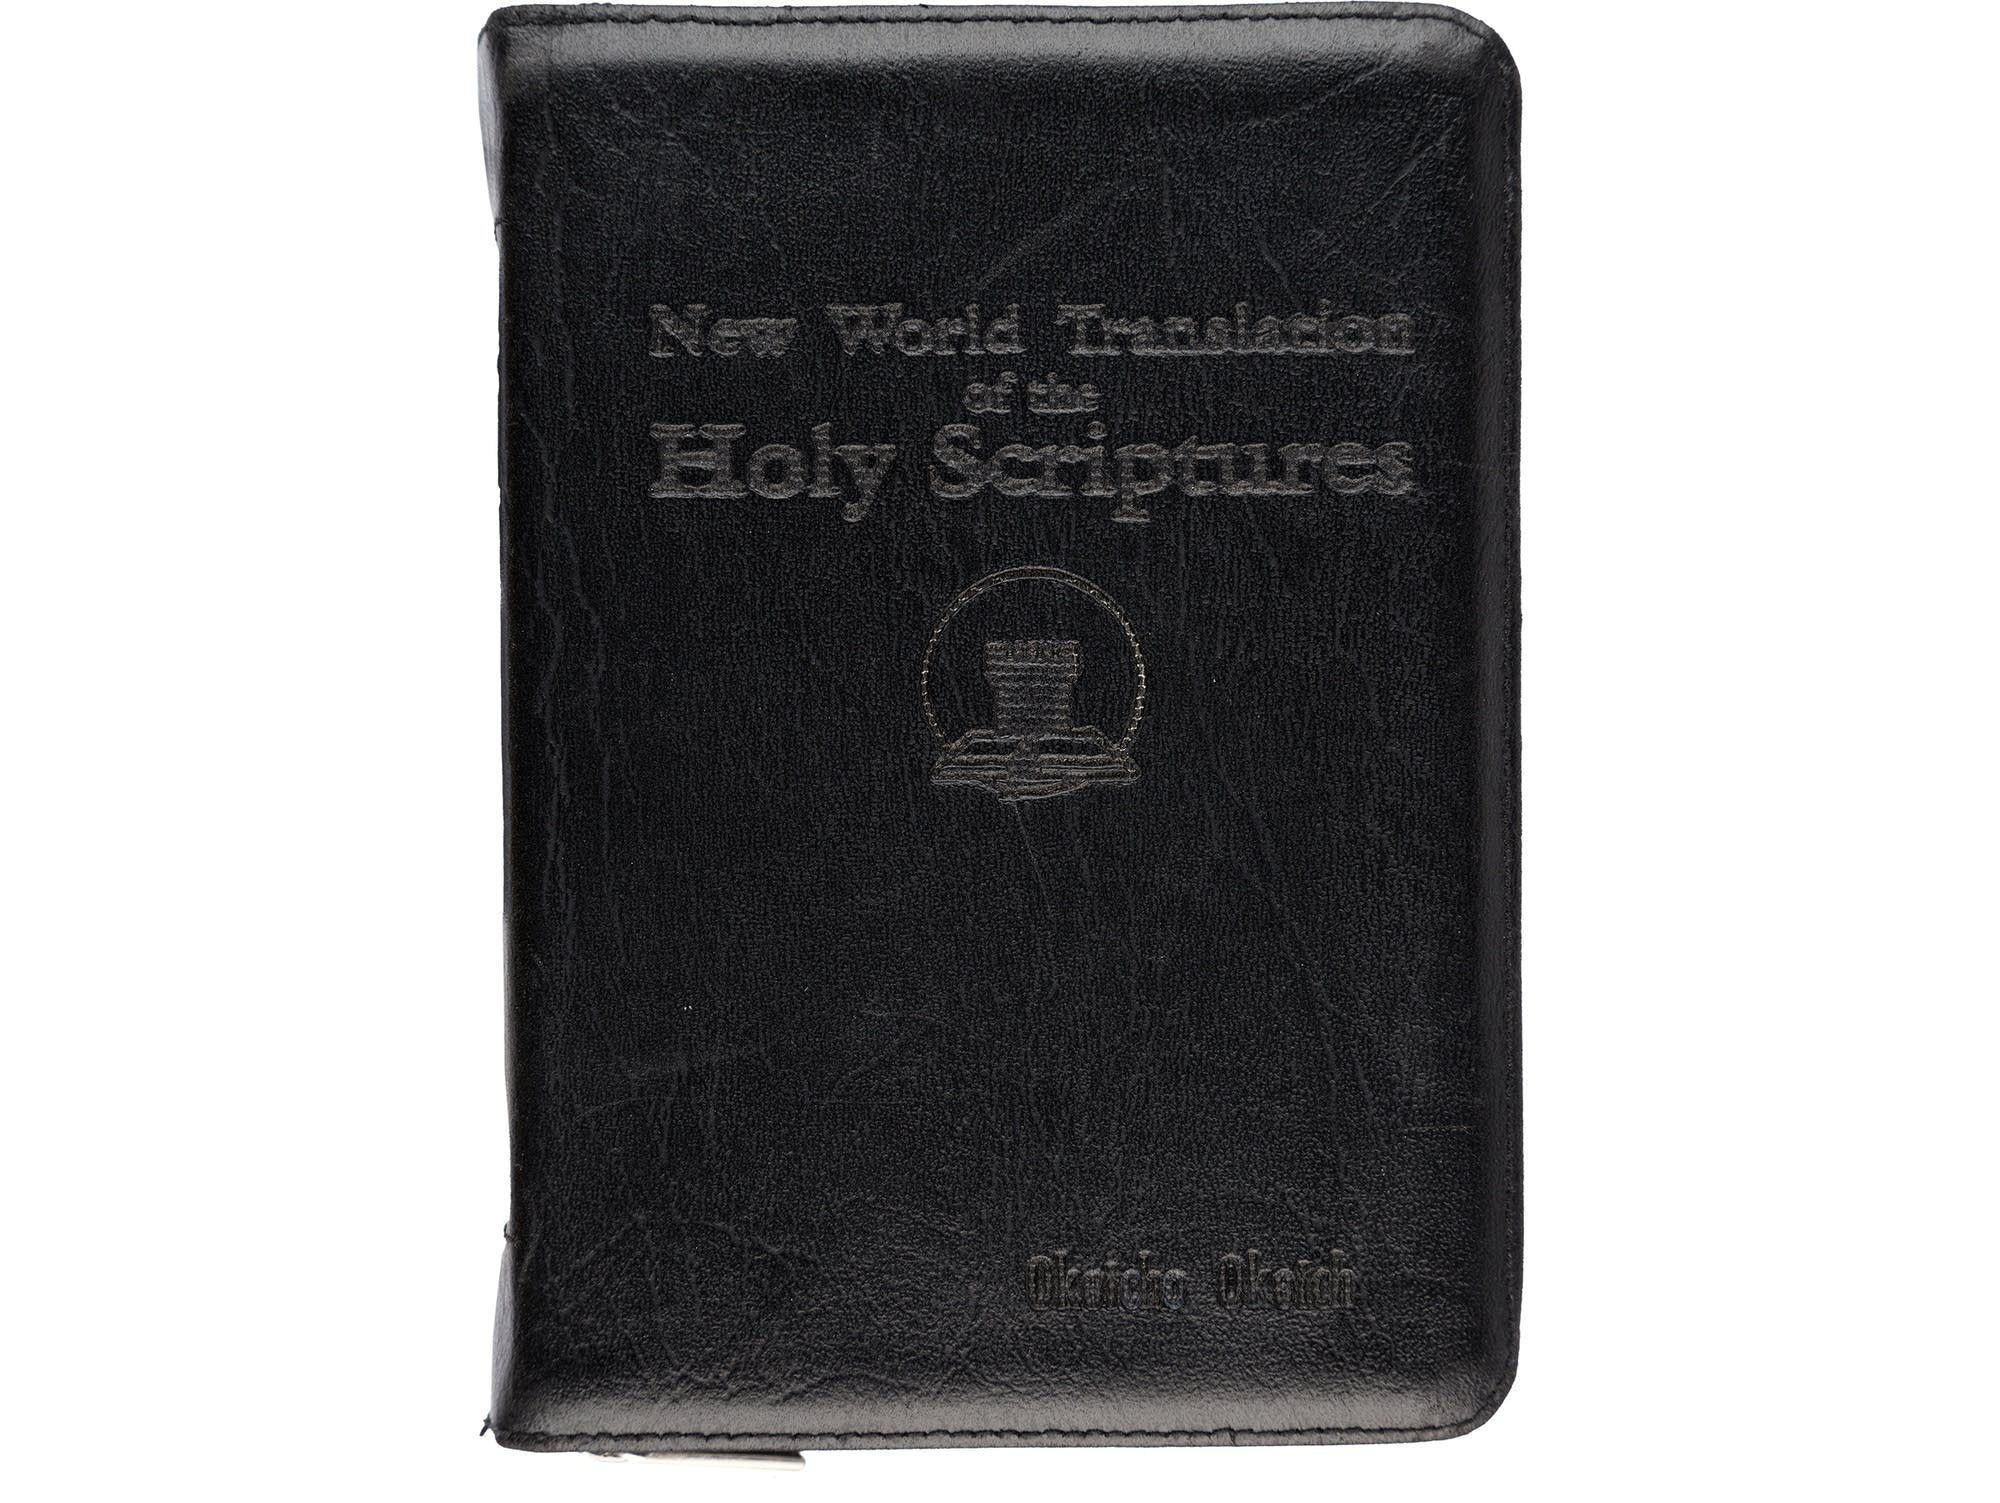 A Bible formerly owned by Prince.